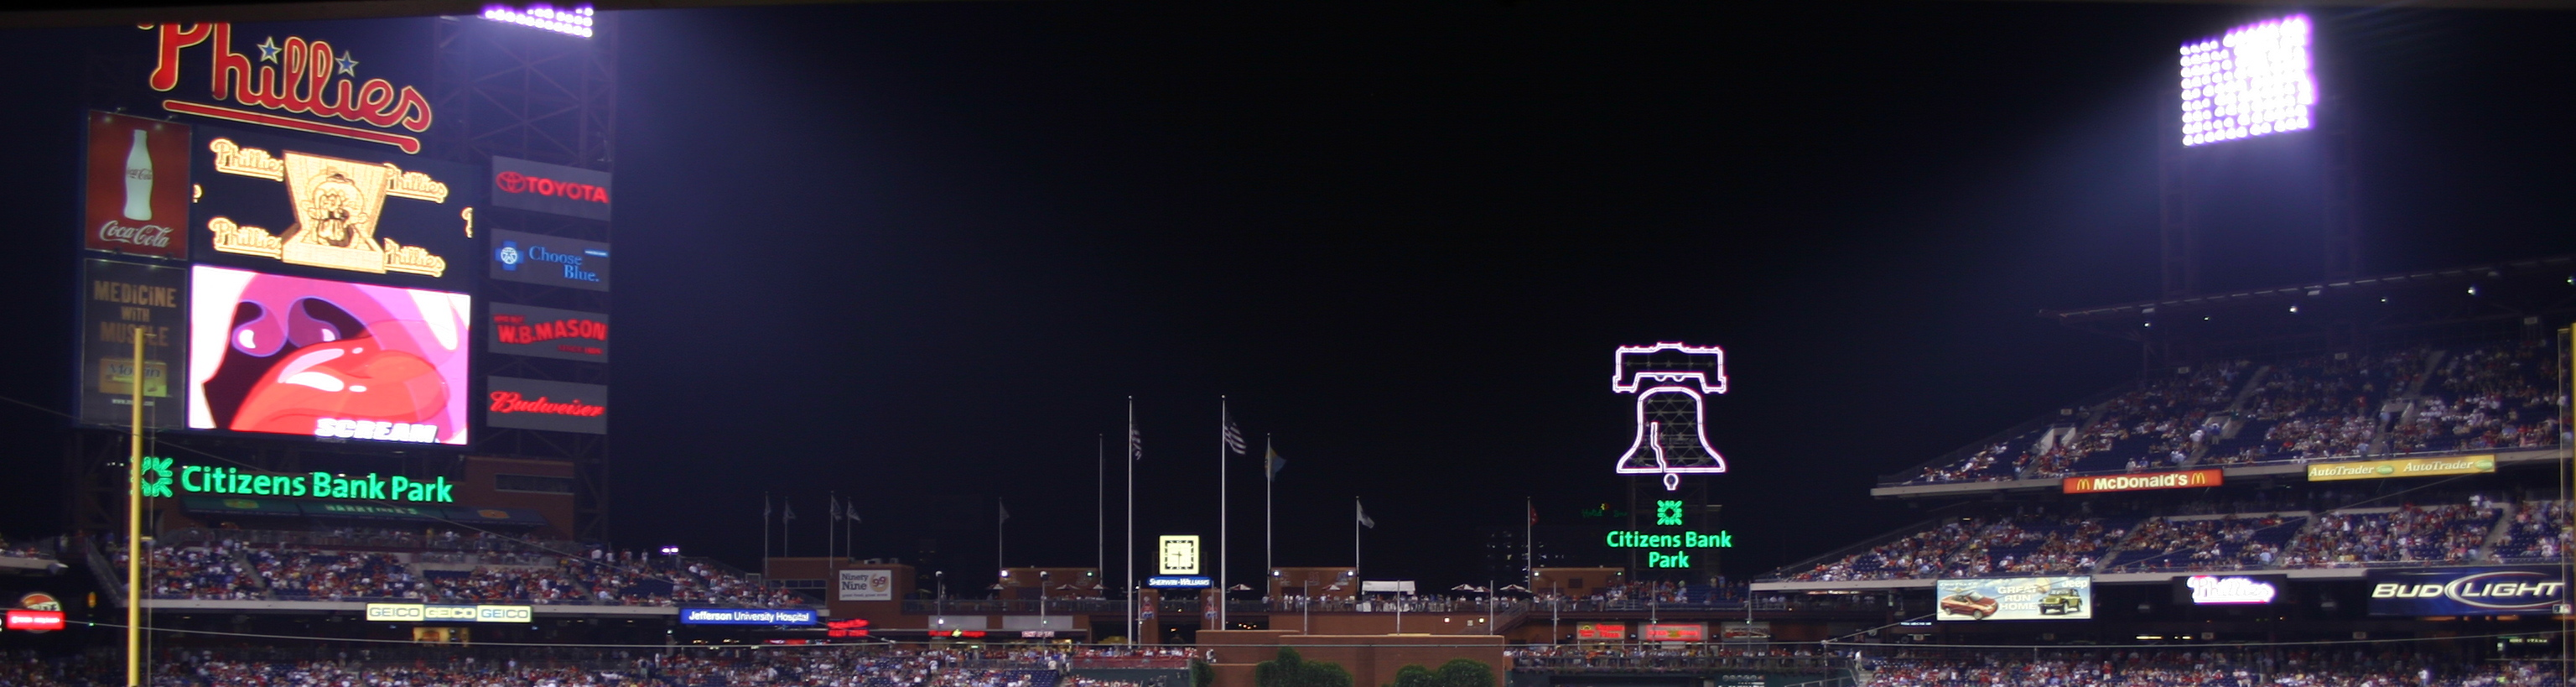 Citizens_Bank_Park_Scoreboard.jpg